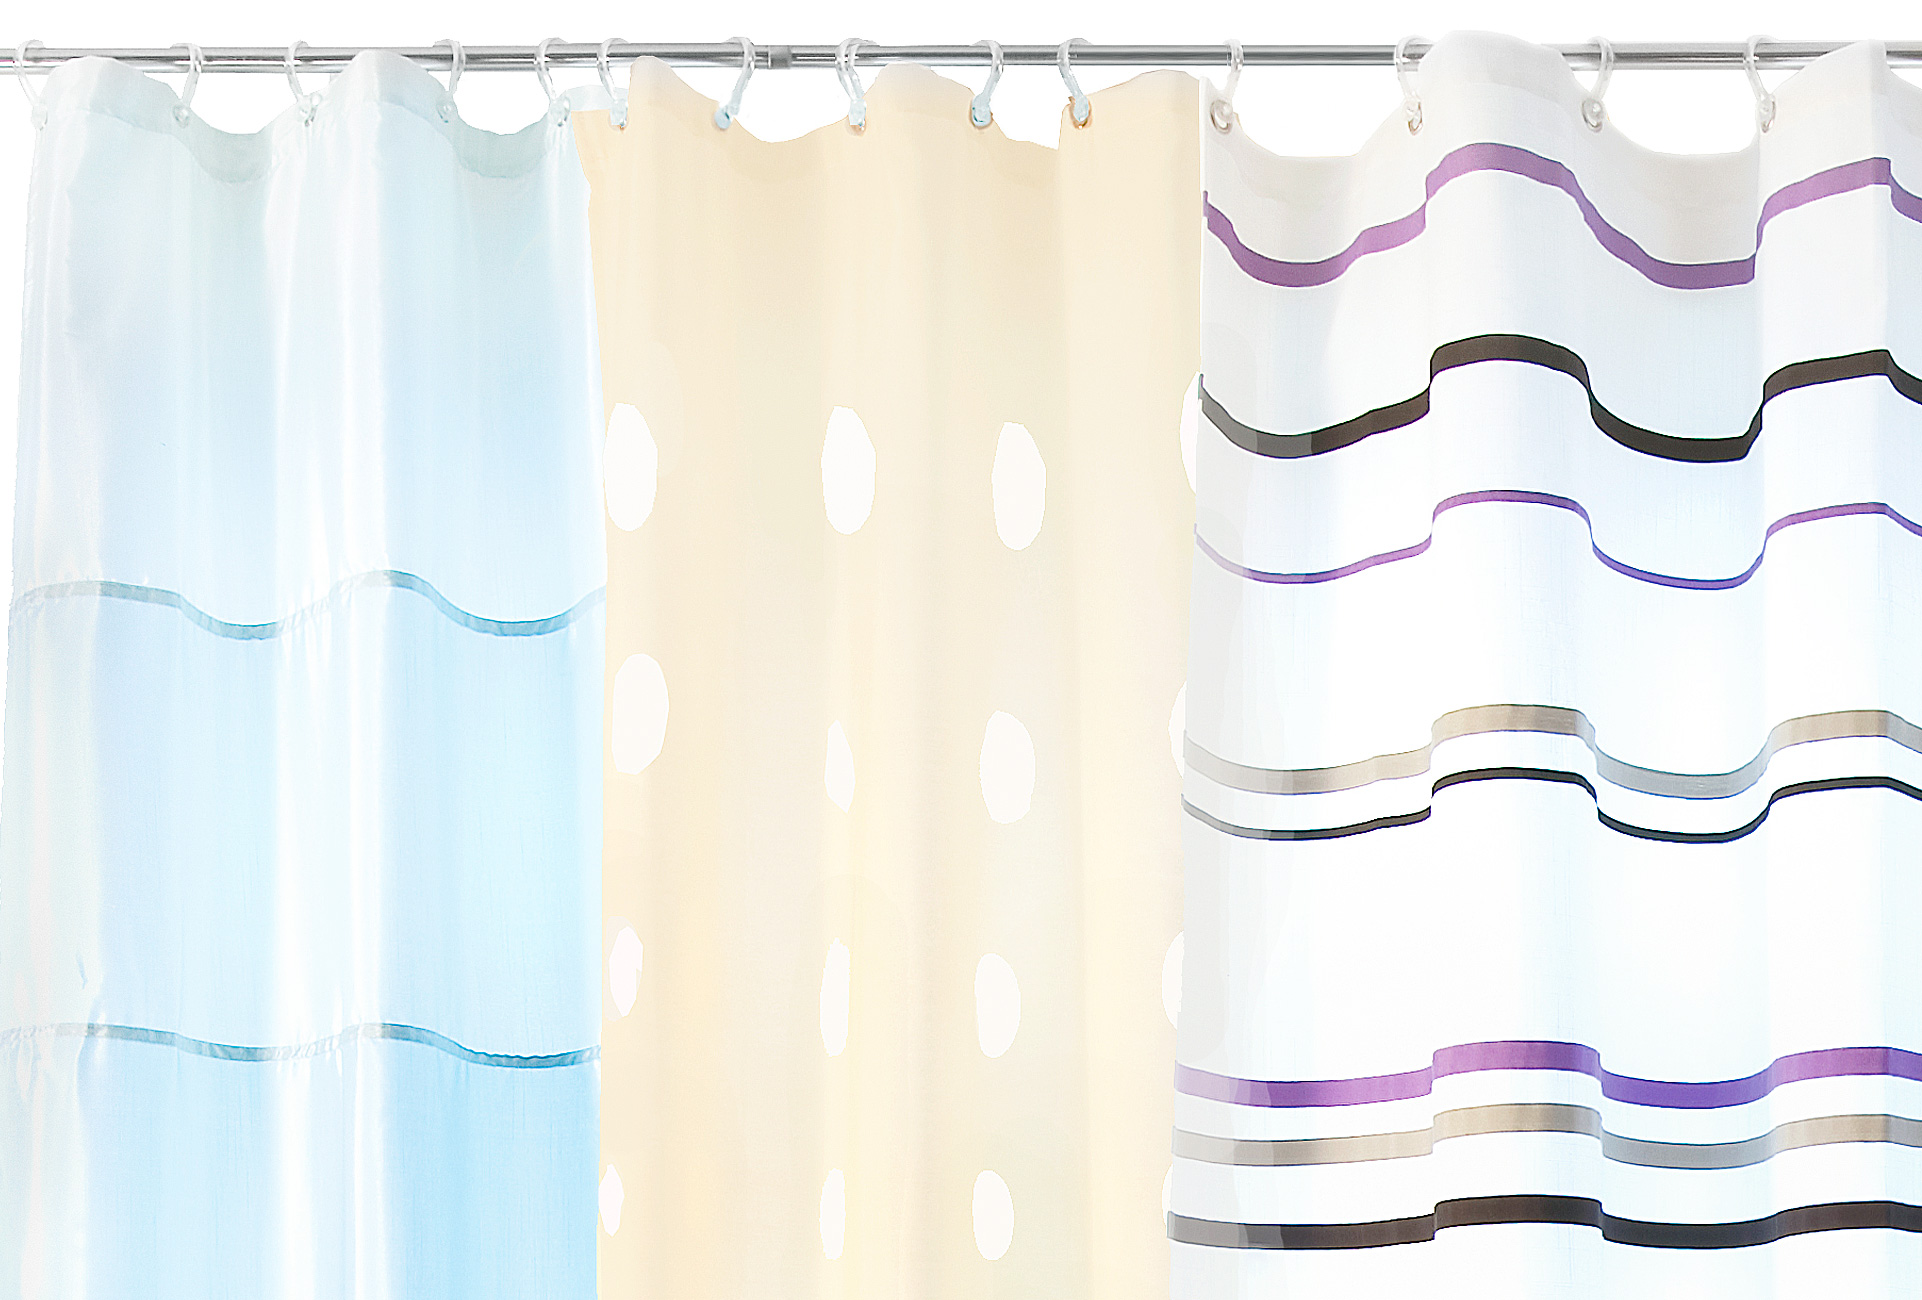 jl-nick-munro-shower-curtains